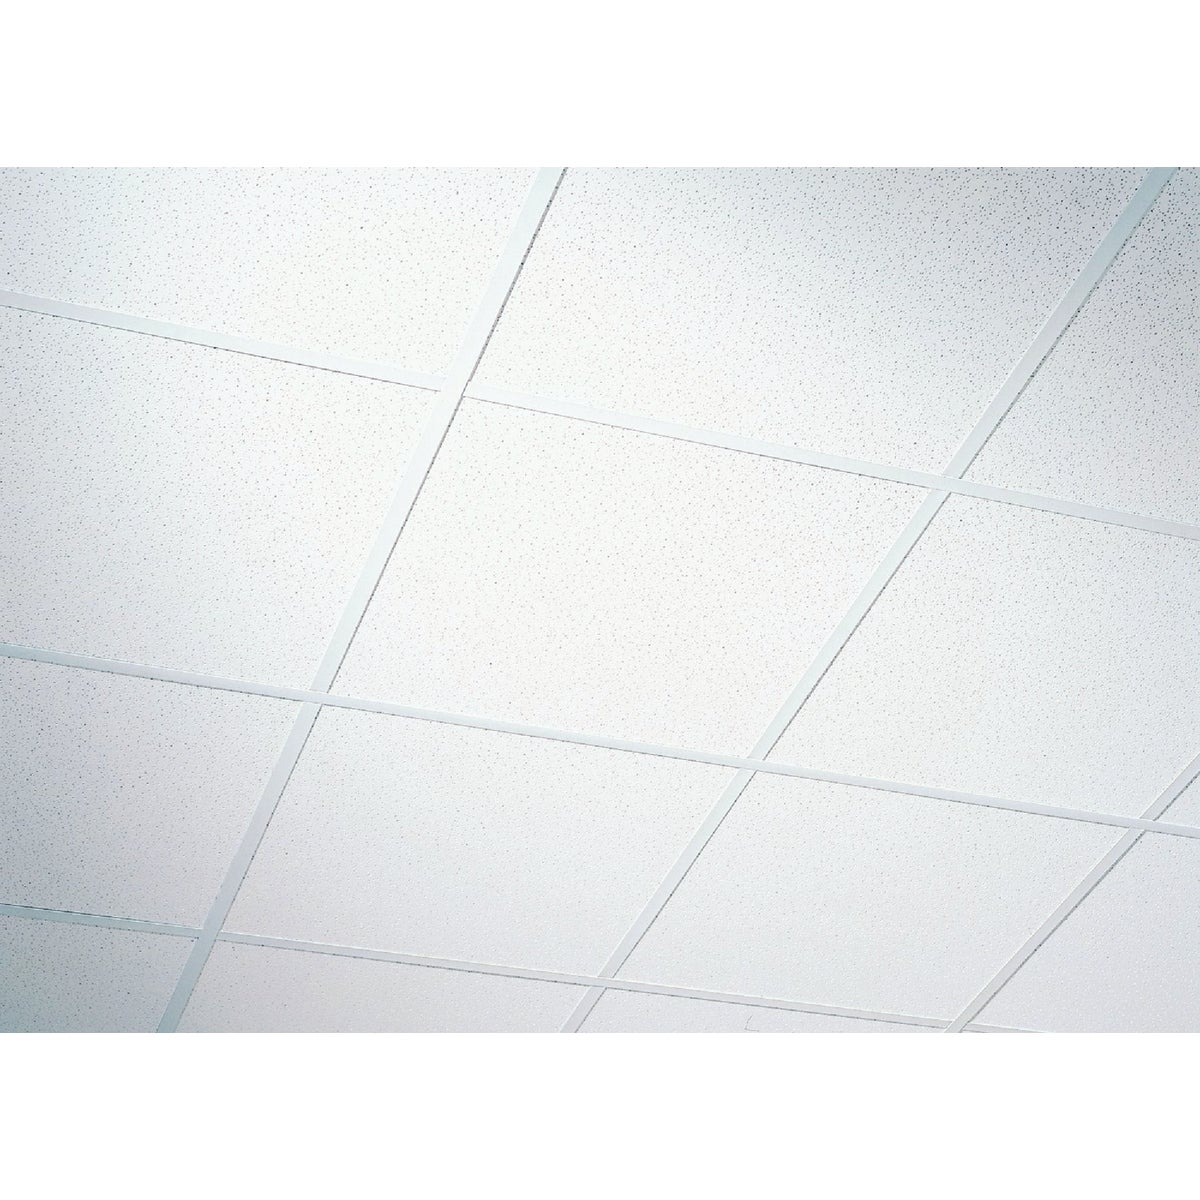 2X2 RADAR CEILING PANEL - R2120 by Usg Interiors